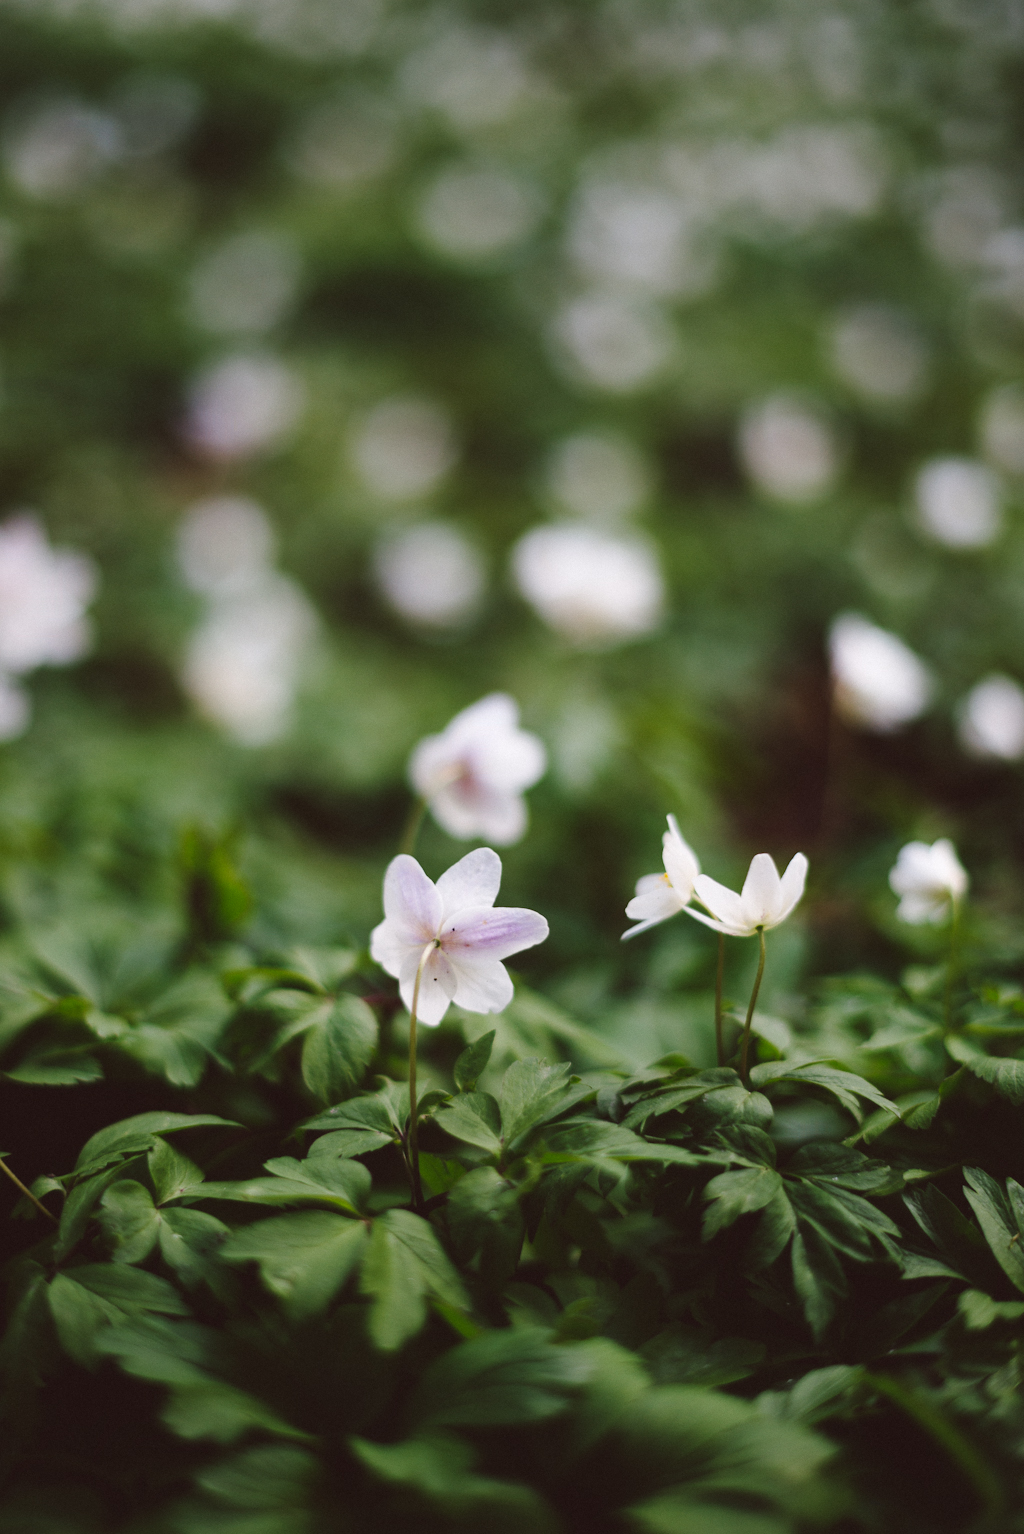 Wood Anemone by Babes in Boyland